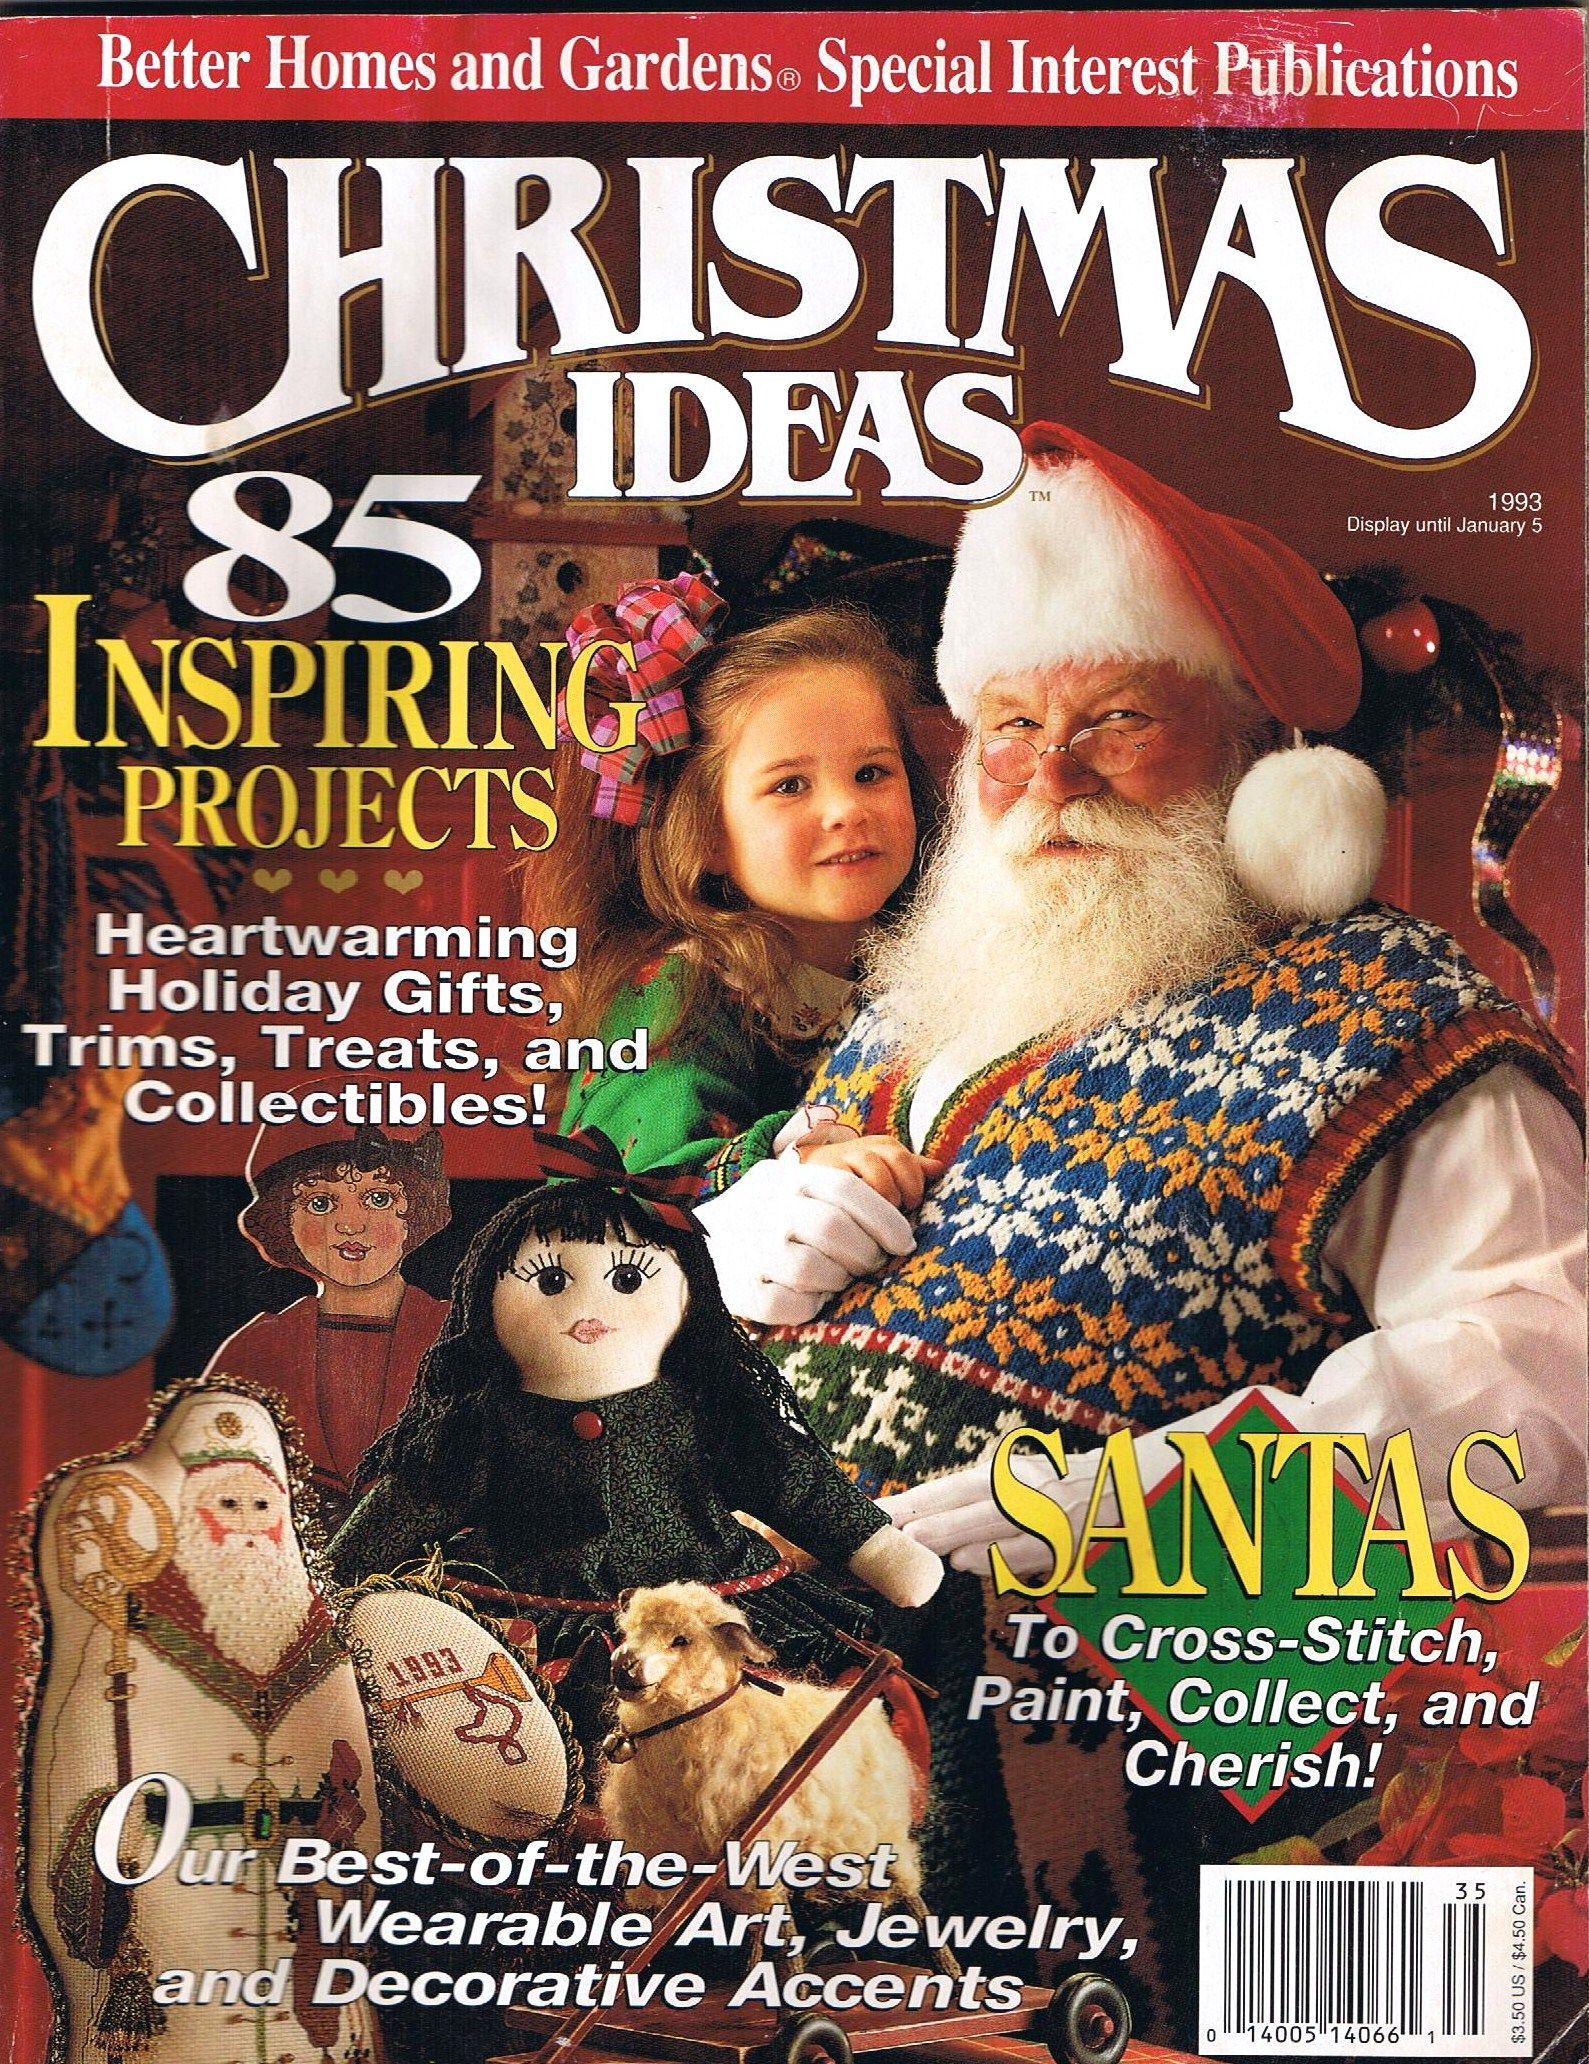 Better Homes And Gardens Creative Ideas Christmas Ideas 85 Inspiring Projects 1993 By Editor